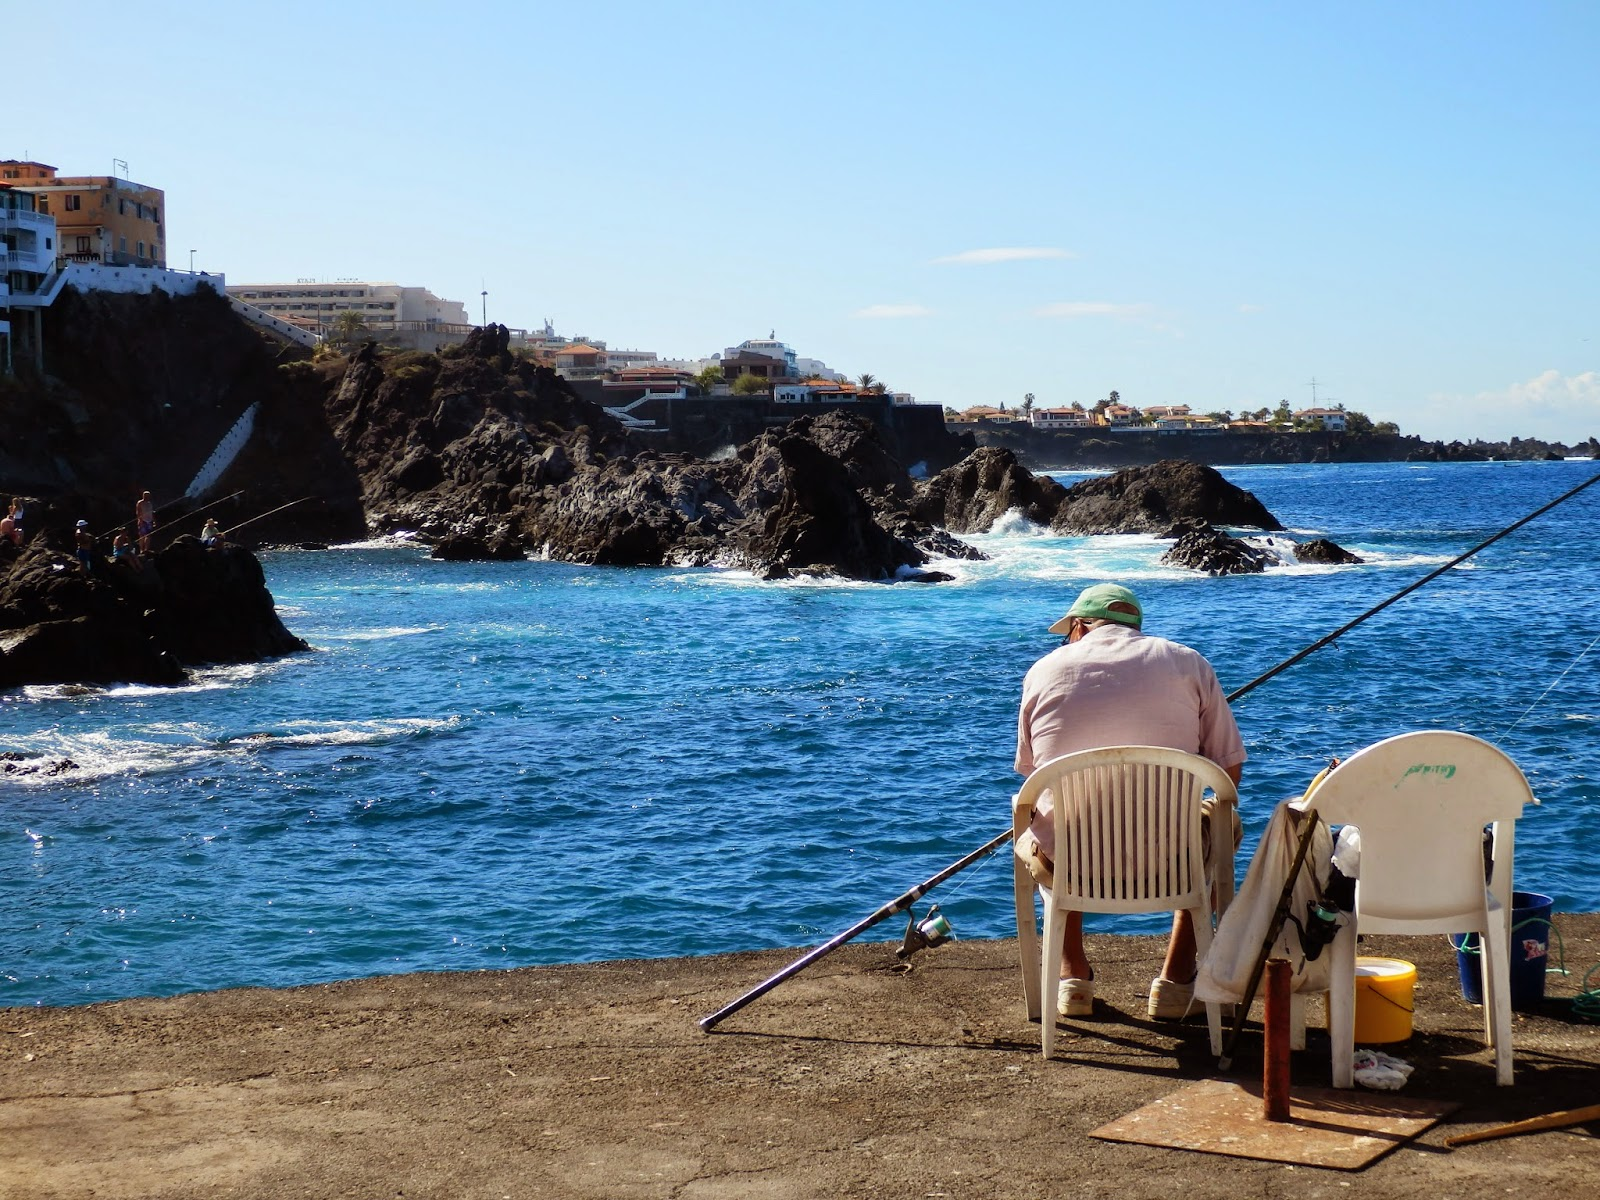 Fisherman in Tenerife